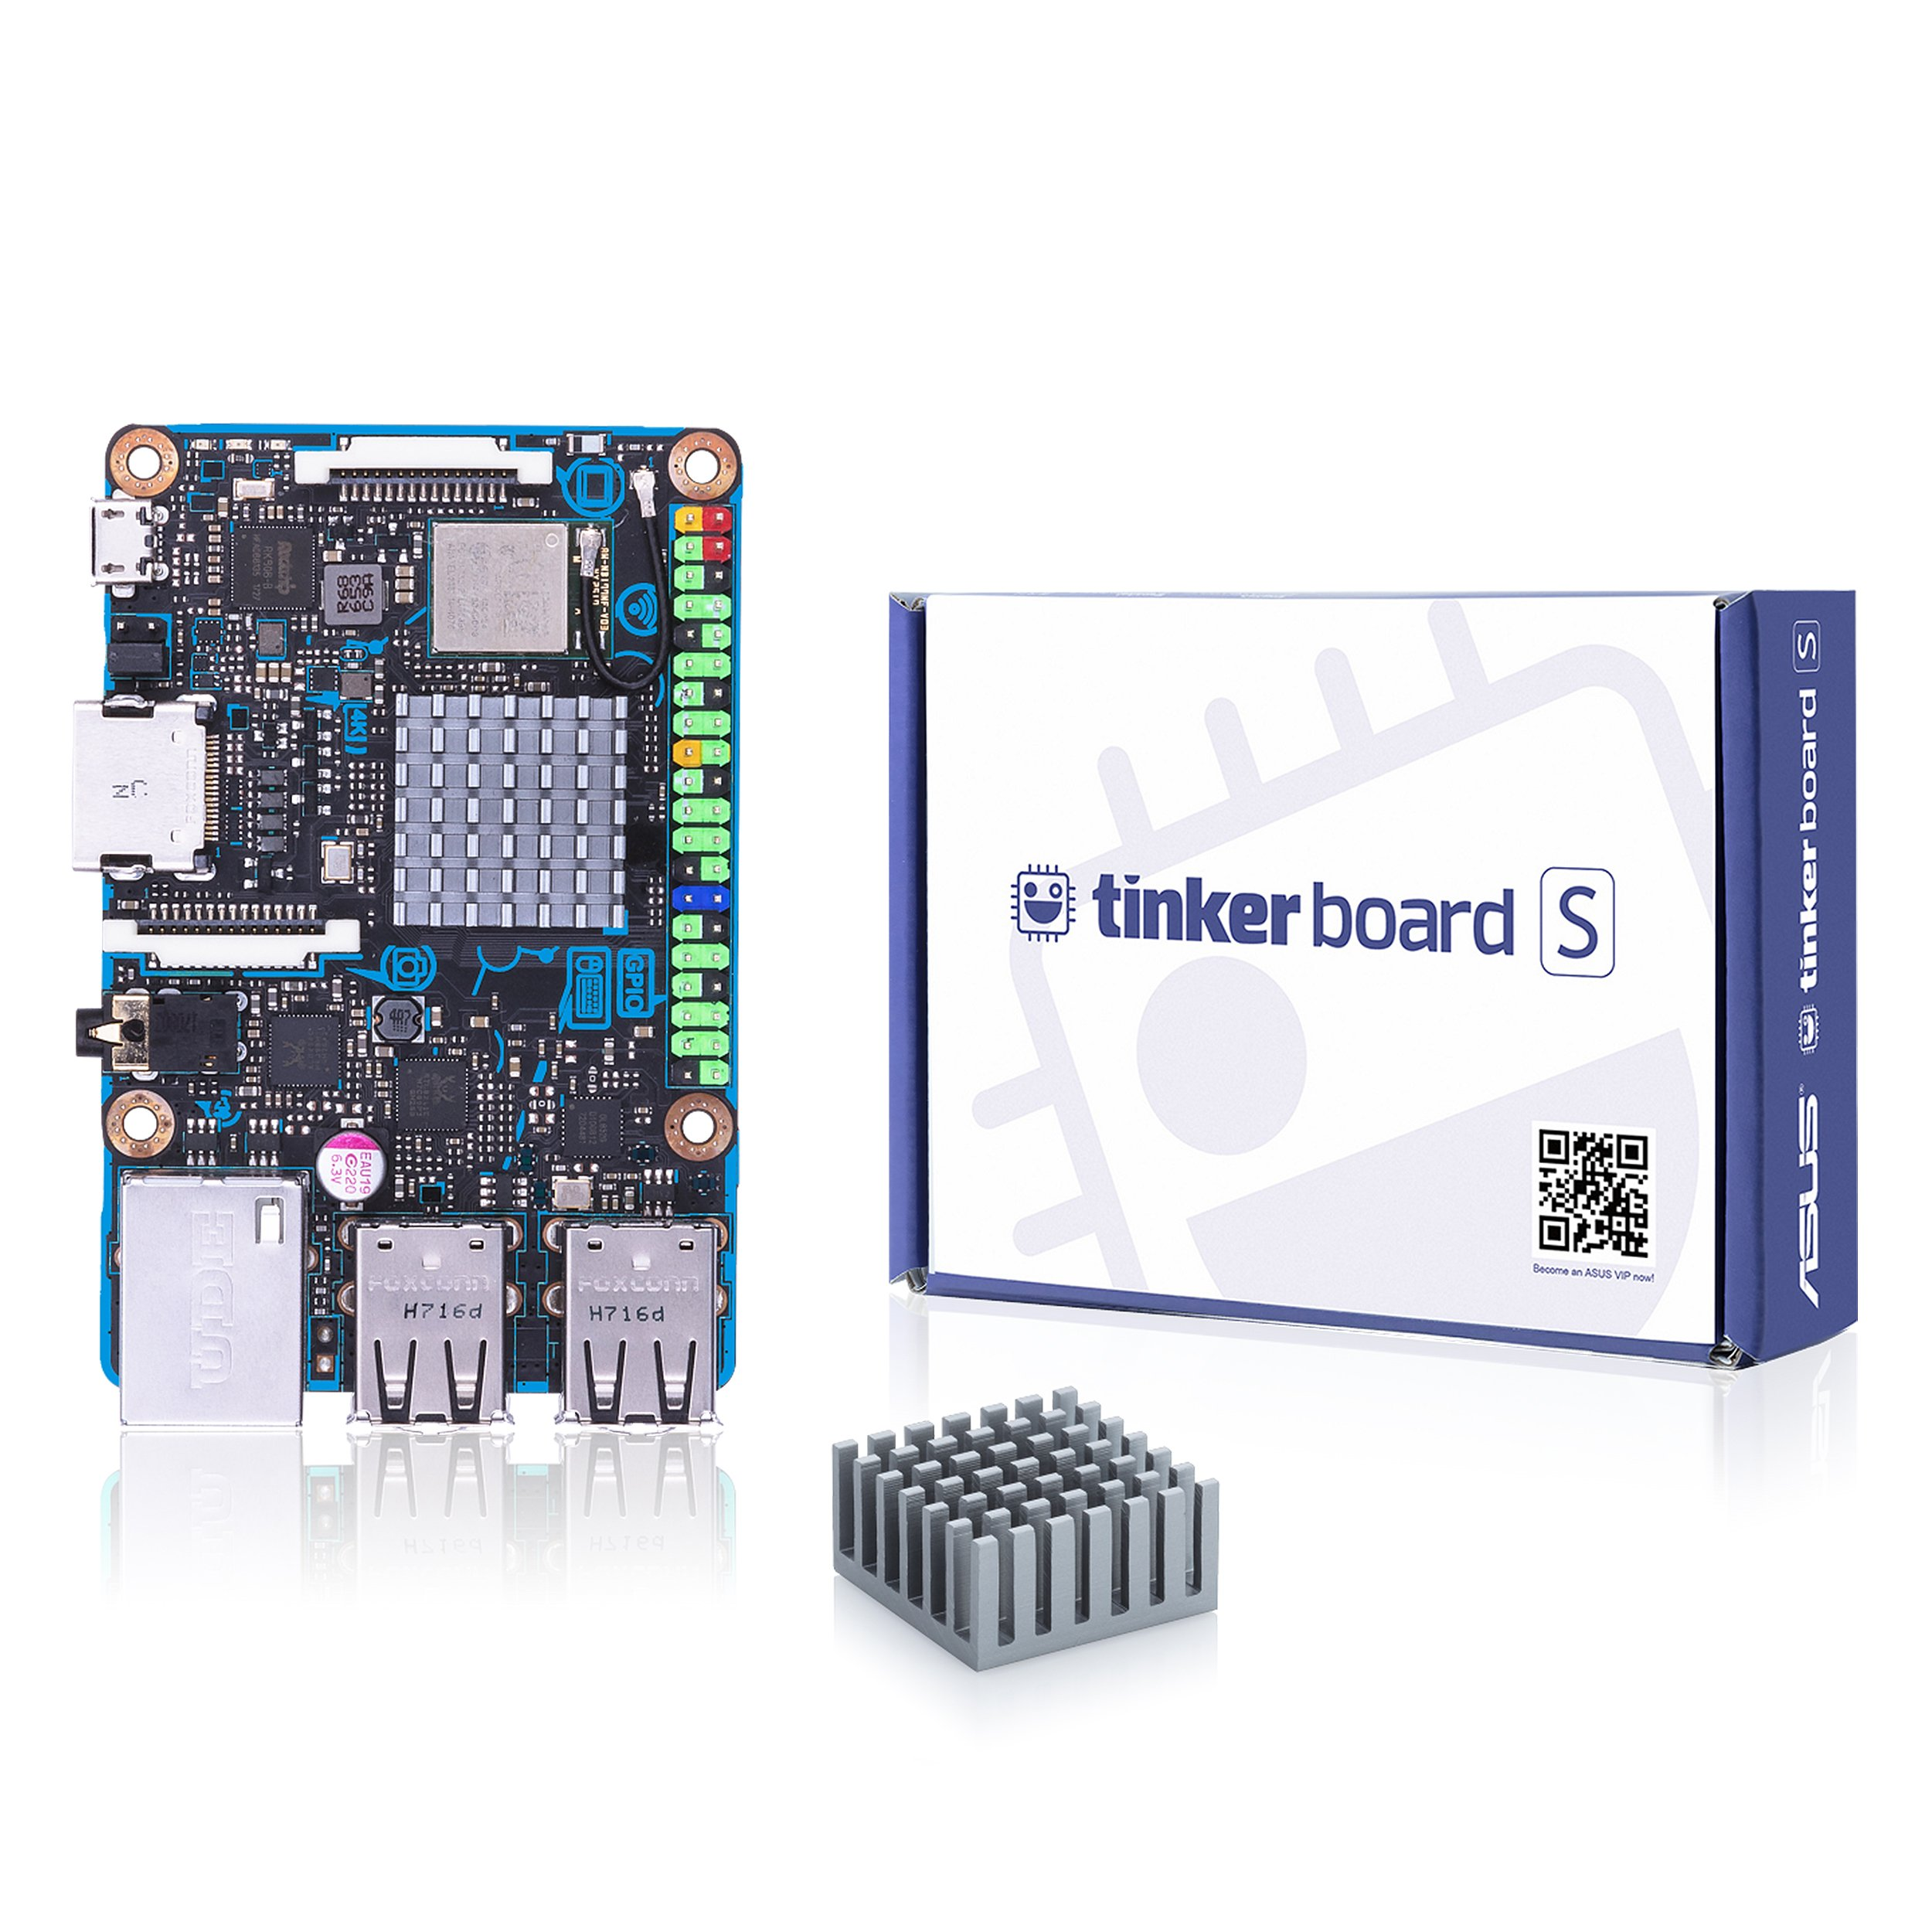 ASUS Tinker Board S Quad-Core 1.8GHz SOC 2GB RAM 16GB eMMC Storage GB LAN Wi-Fi & GPIO connectivity Motherboards